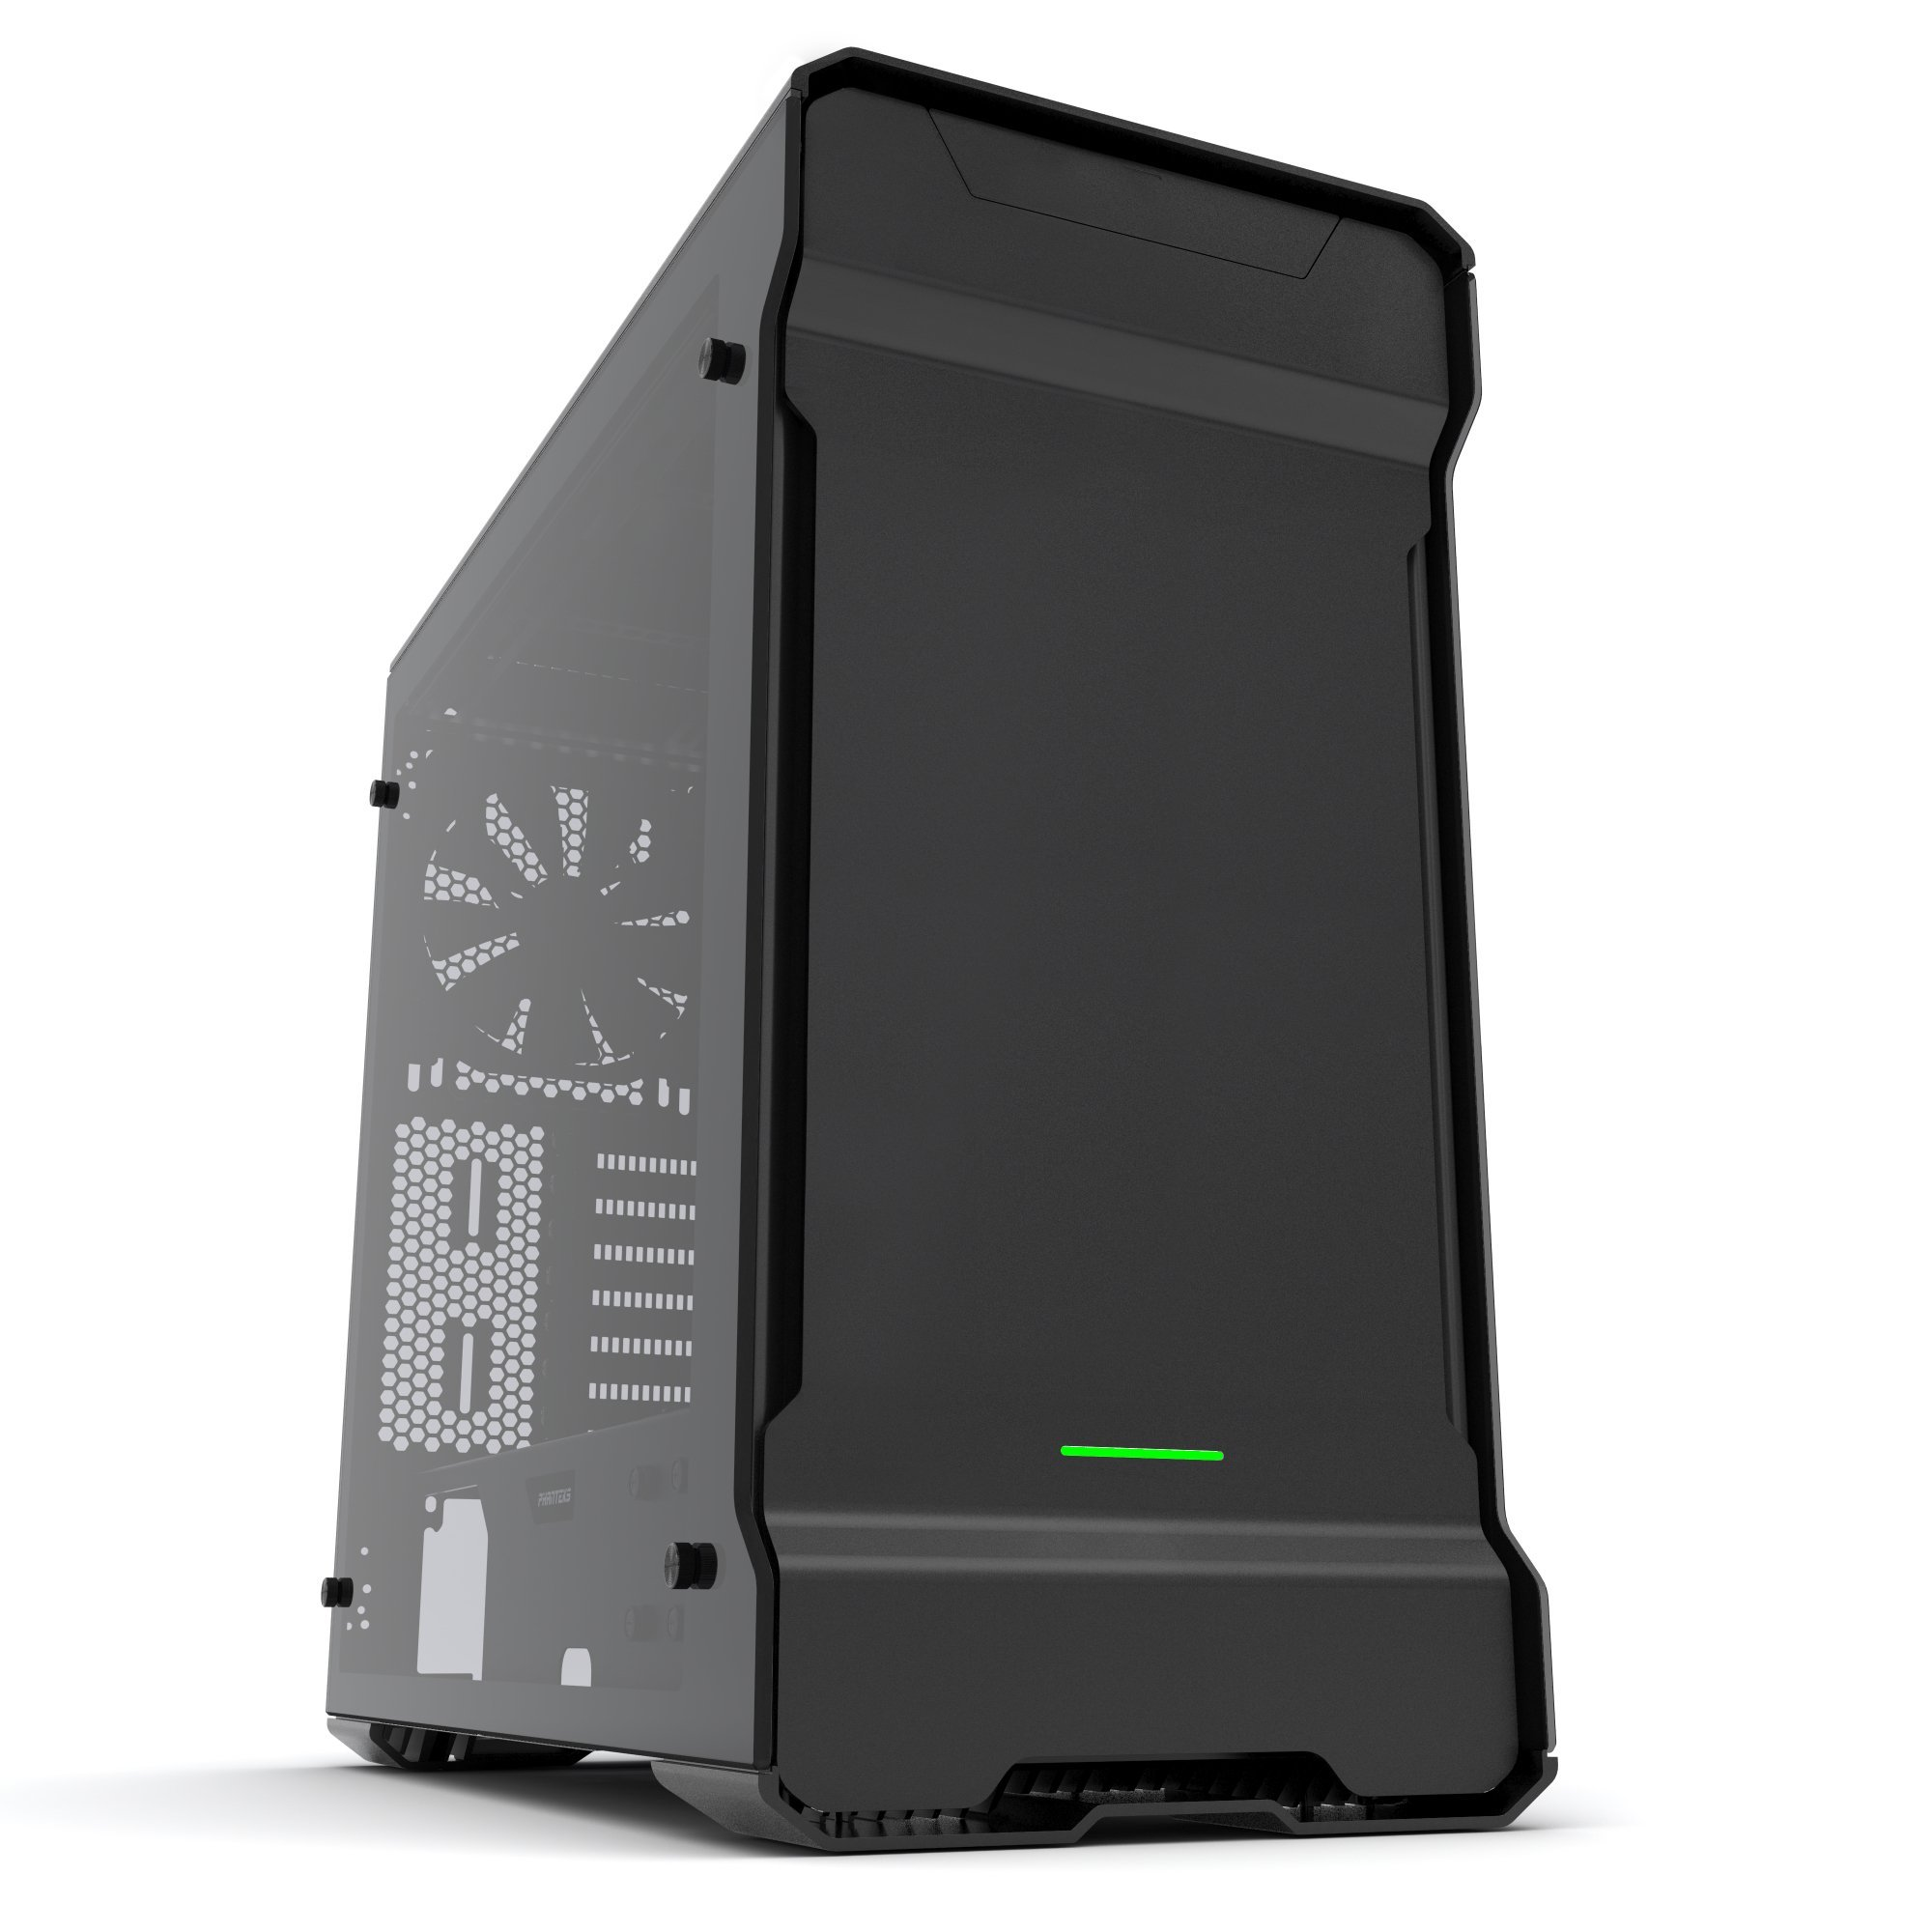 Phanteks Enthoo Evolv ATX Computer Case - Tempered Glass Edition, Satin Black PH-ES515ETG_BK by Phanteks